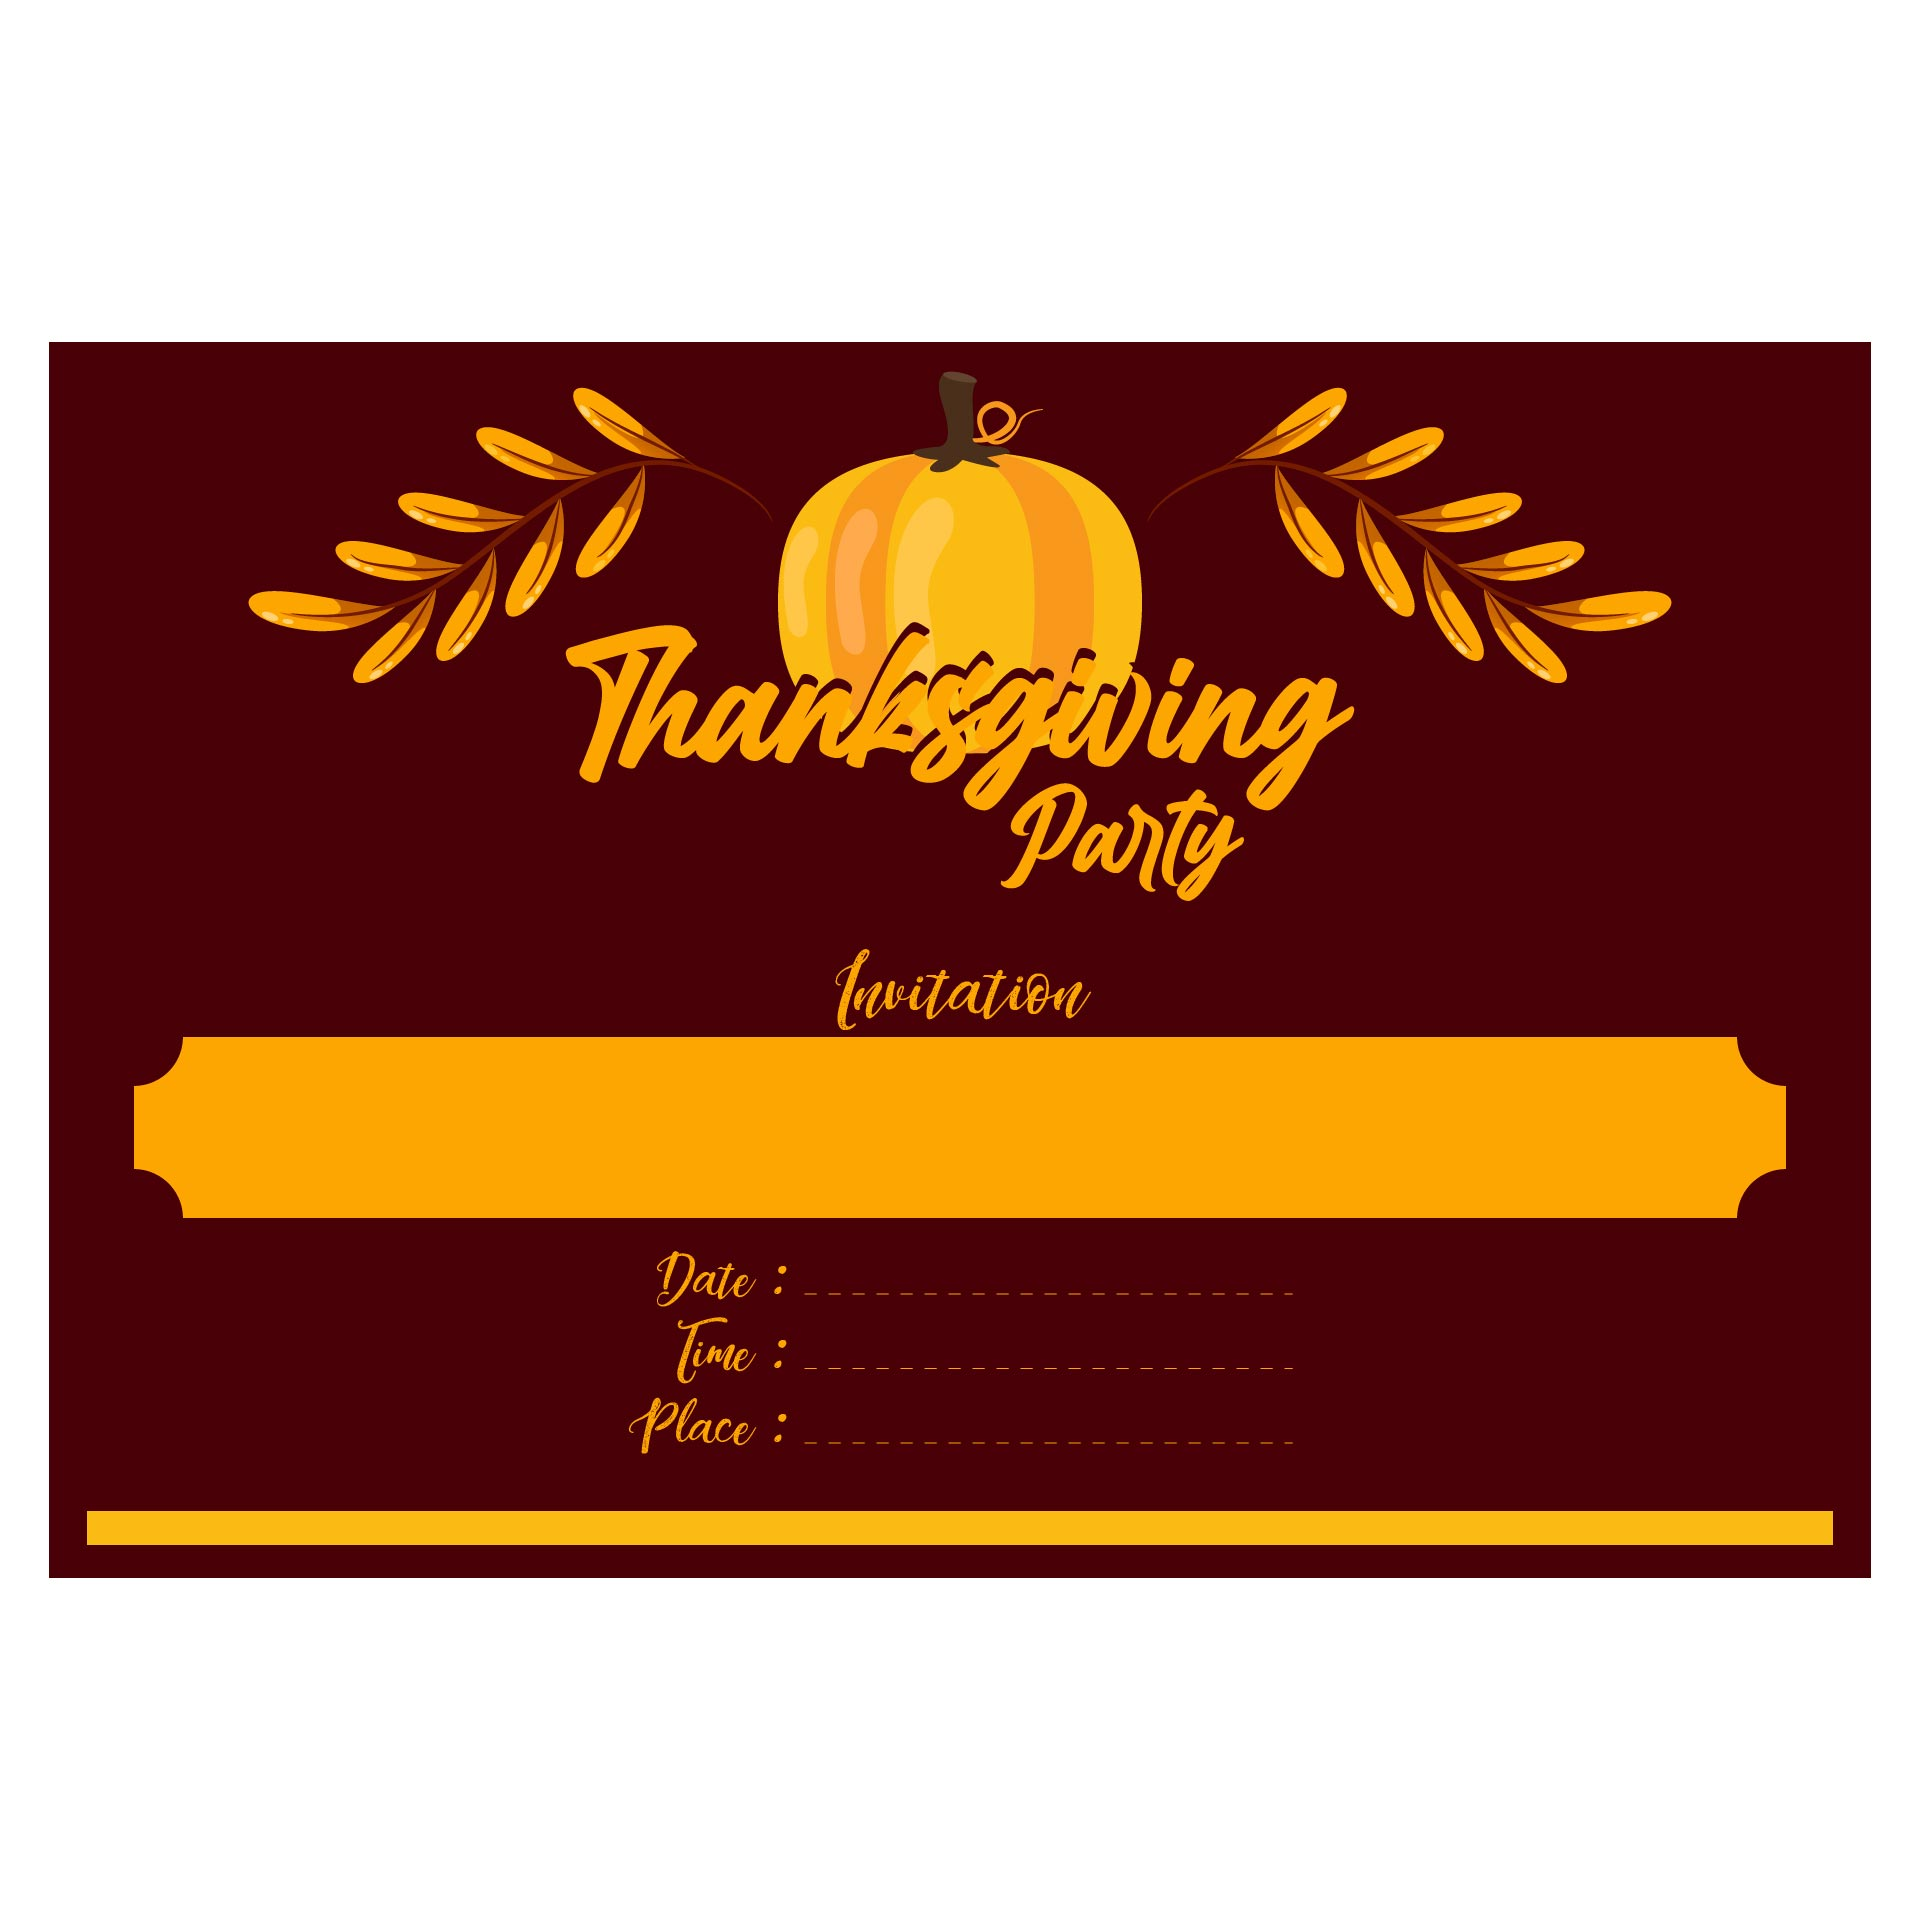 9 best images of thanksgiving printable invitation for Thanksgiving invitation templates free word